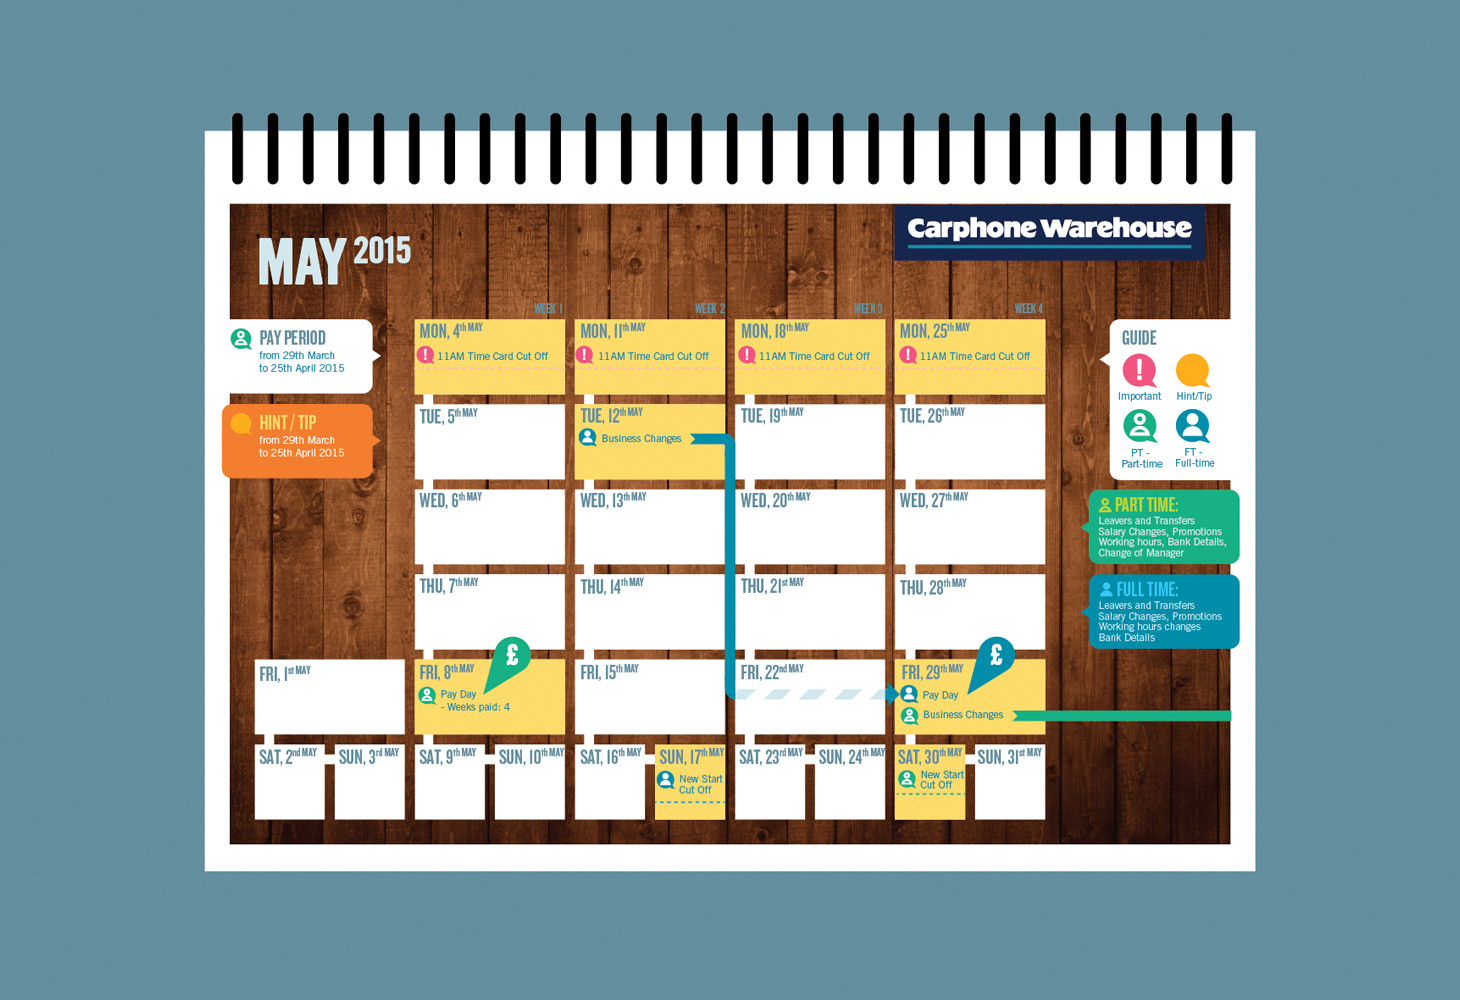 Carphone Warehouse - Calendar - Layout